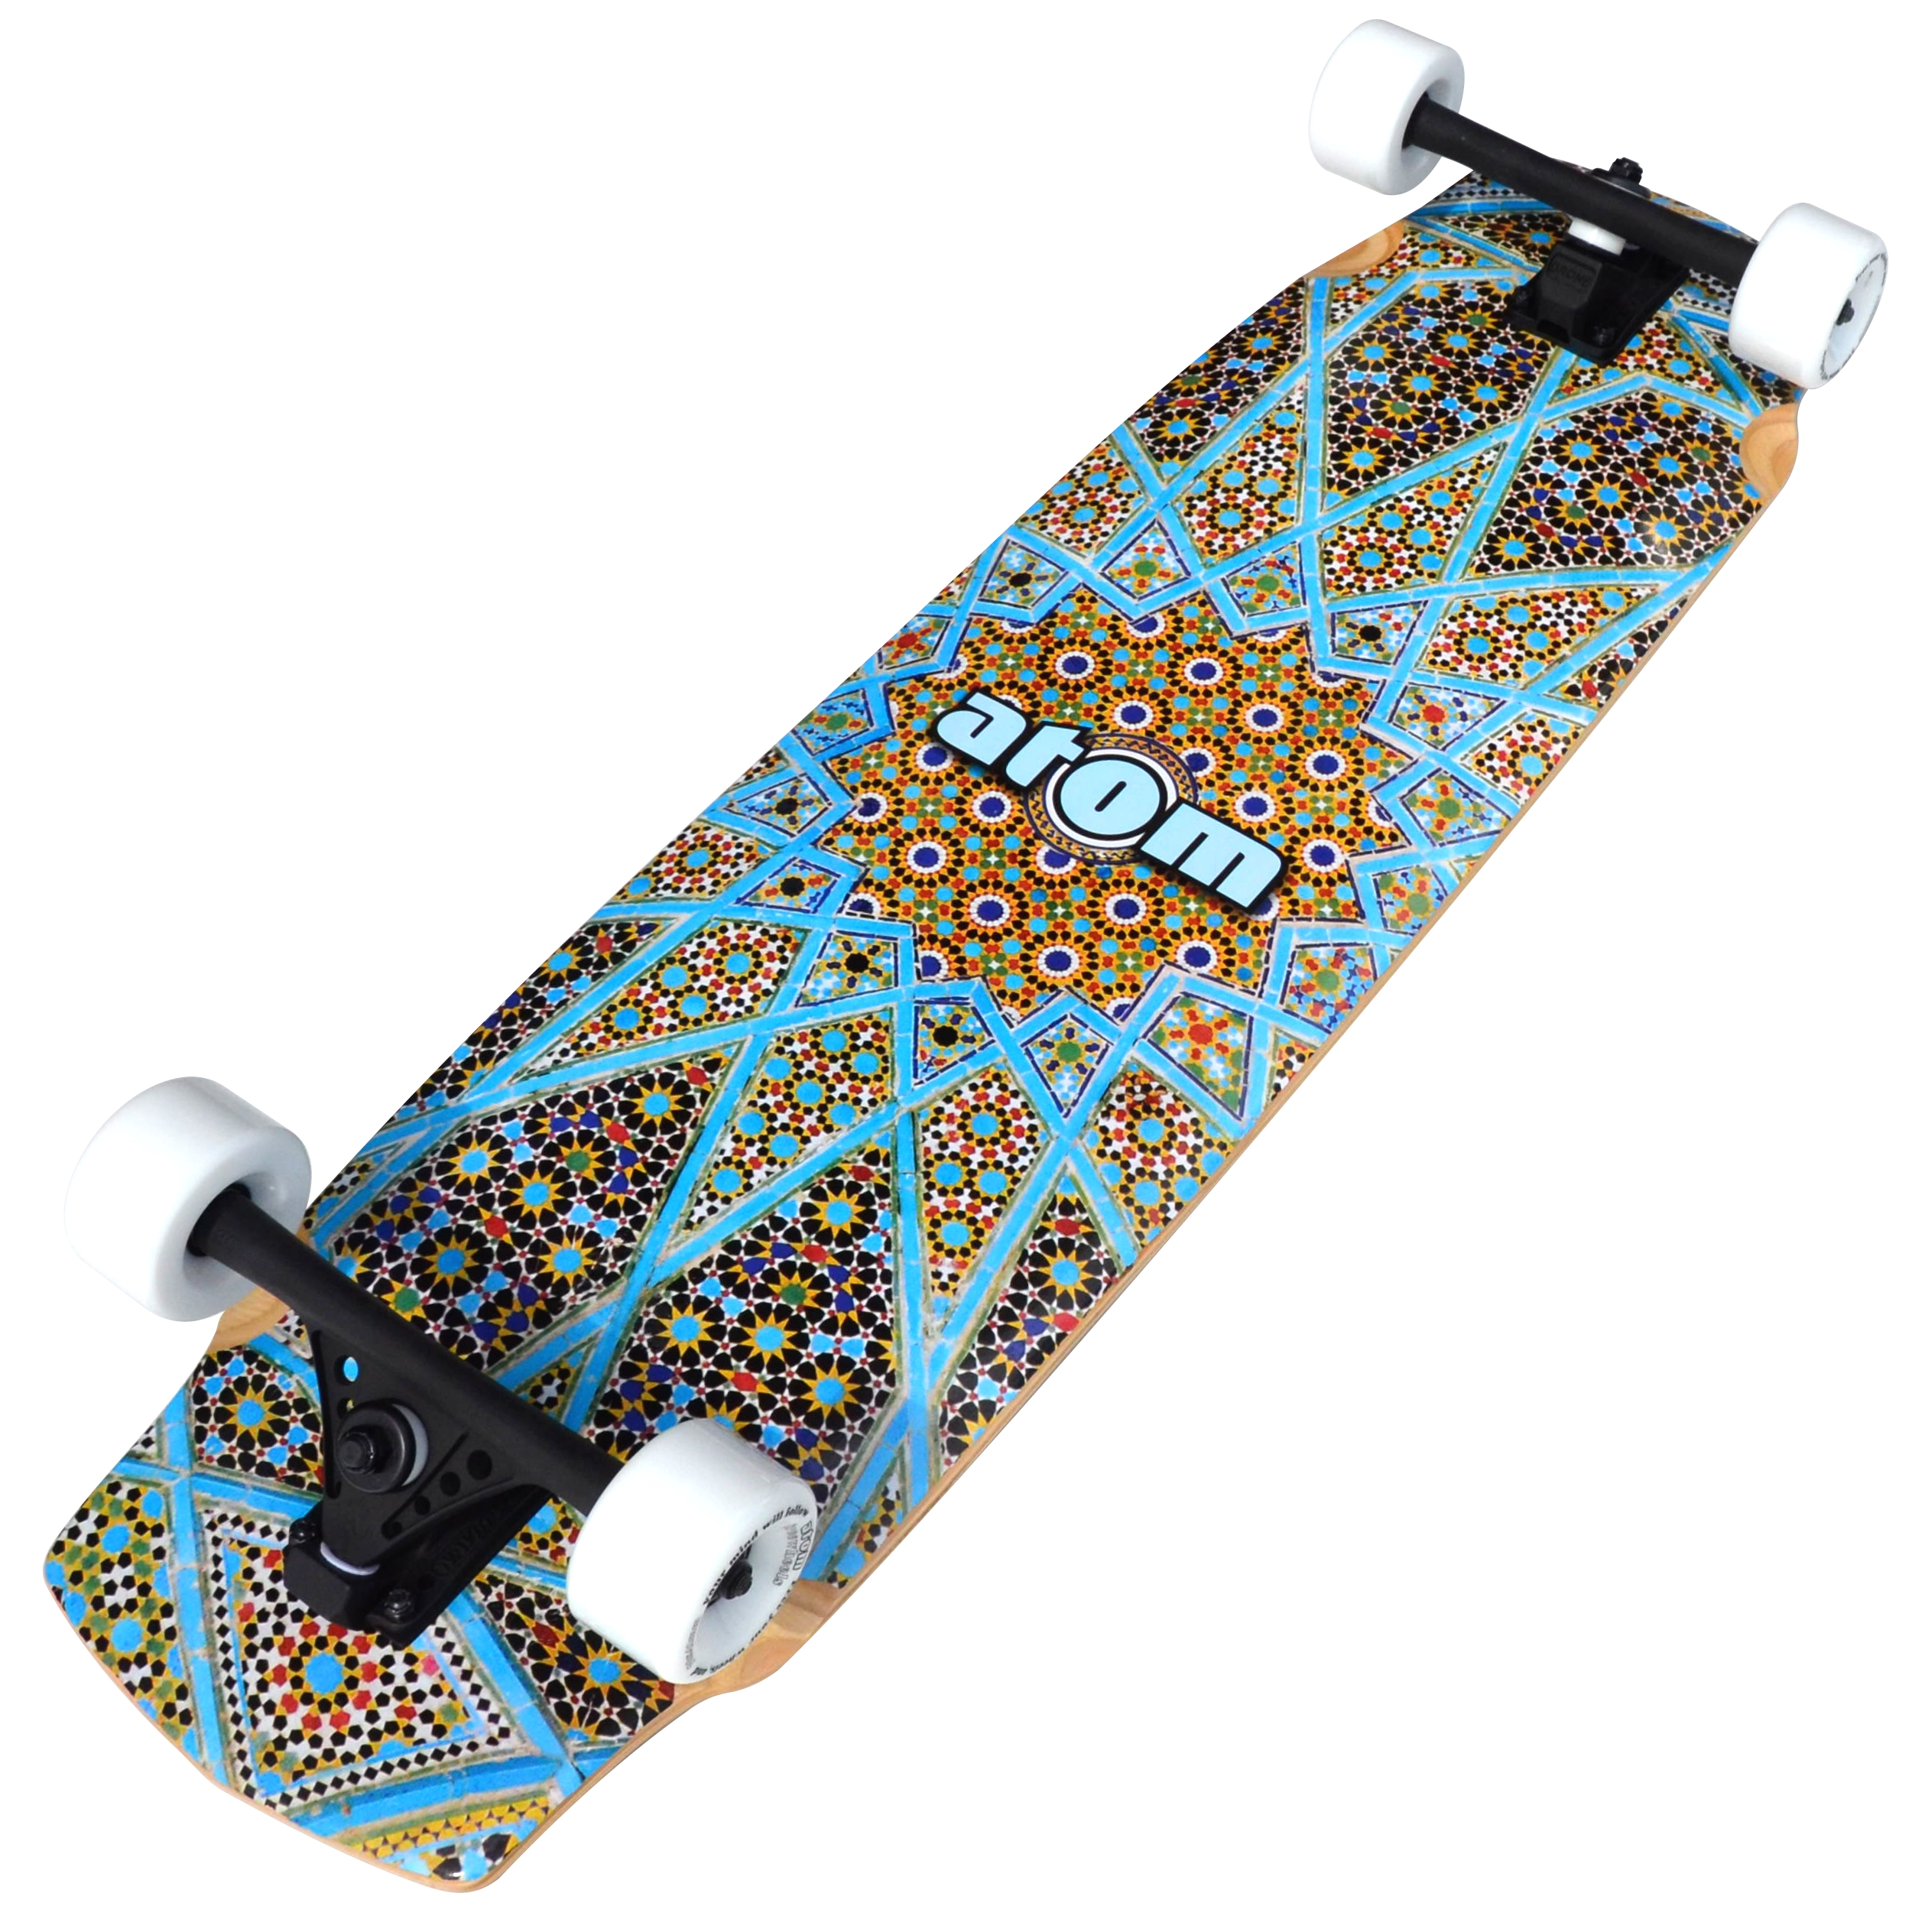 Atom Downhill   Freeride Longboard 37 Inch (Magic Carpet) by Atom